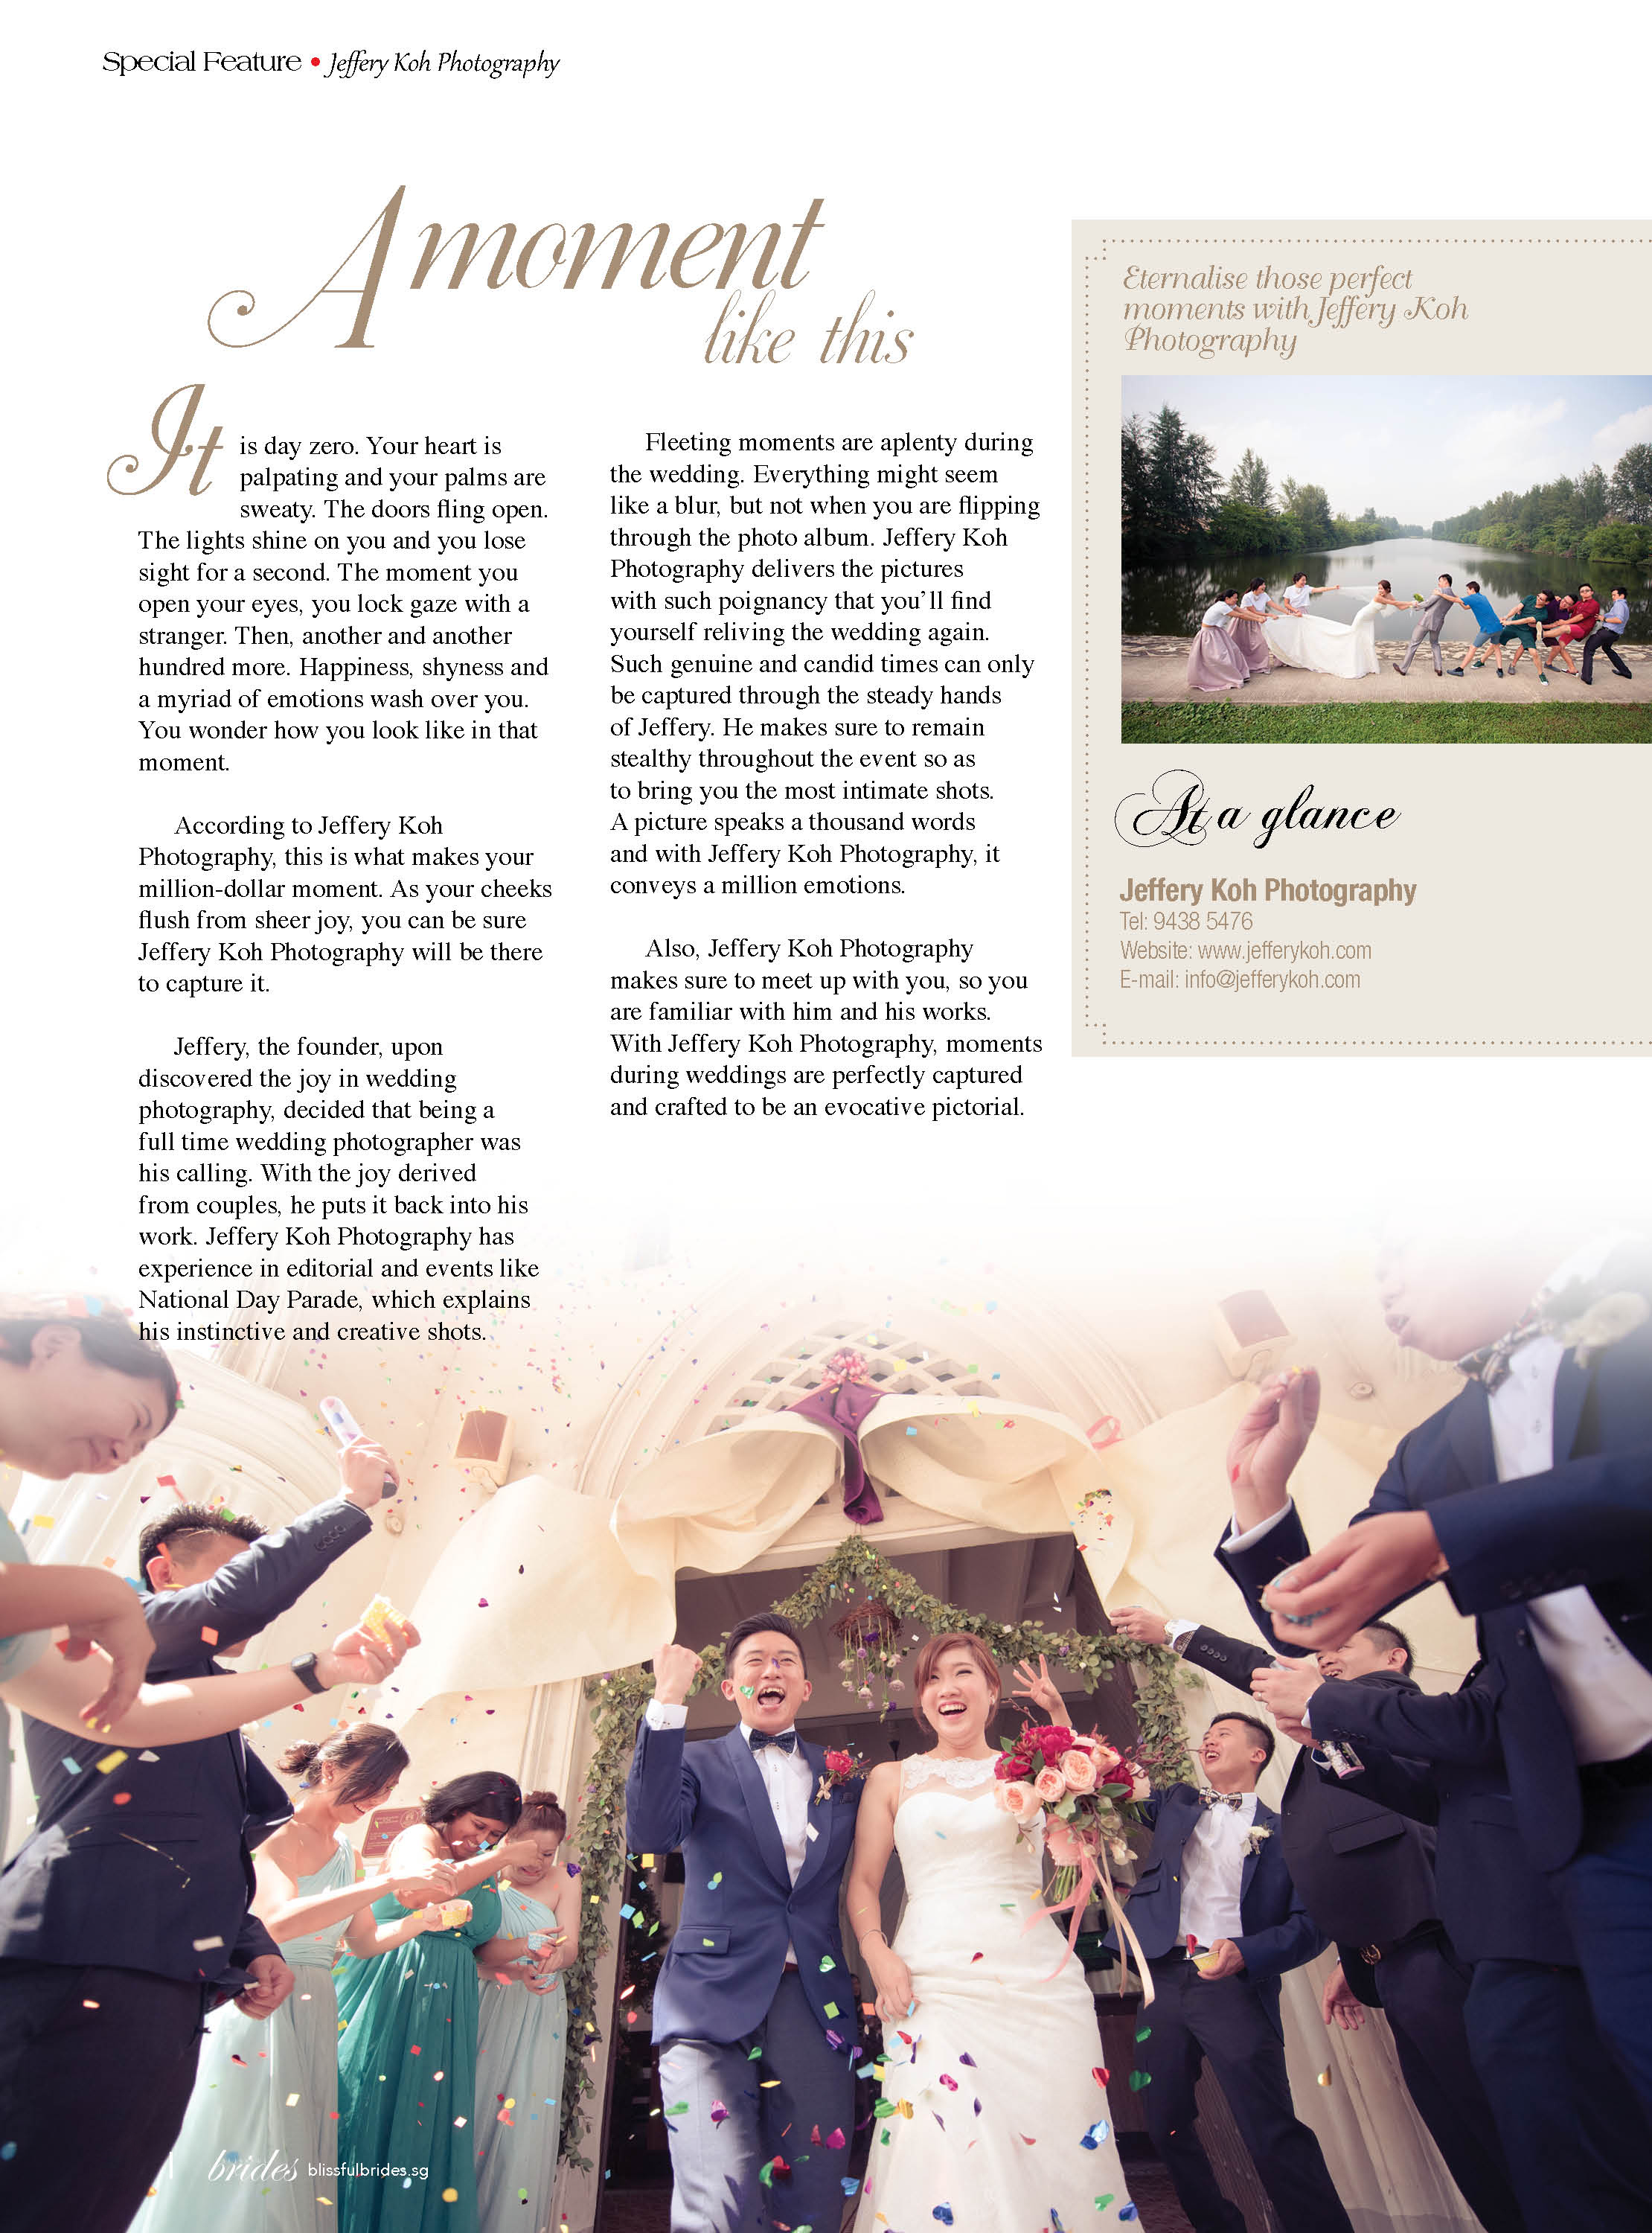 Special Feature on Blissful Brides Magazine (Jul-Dec 2016)